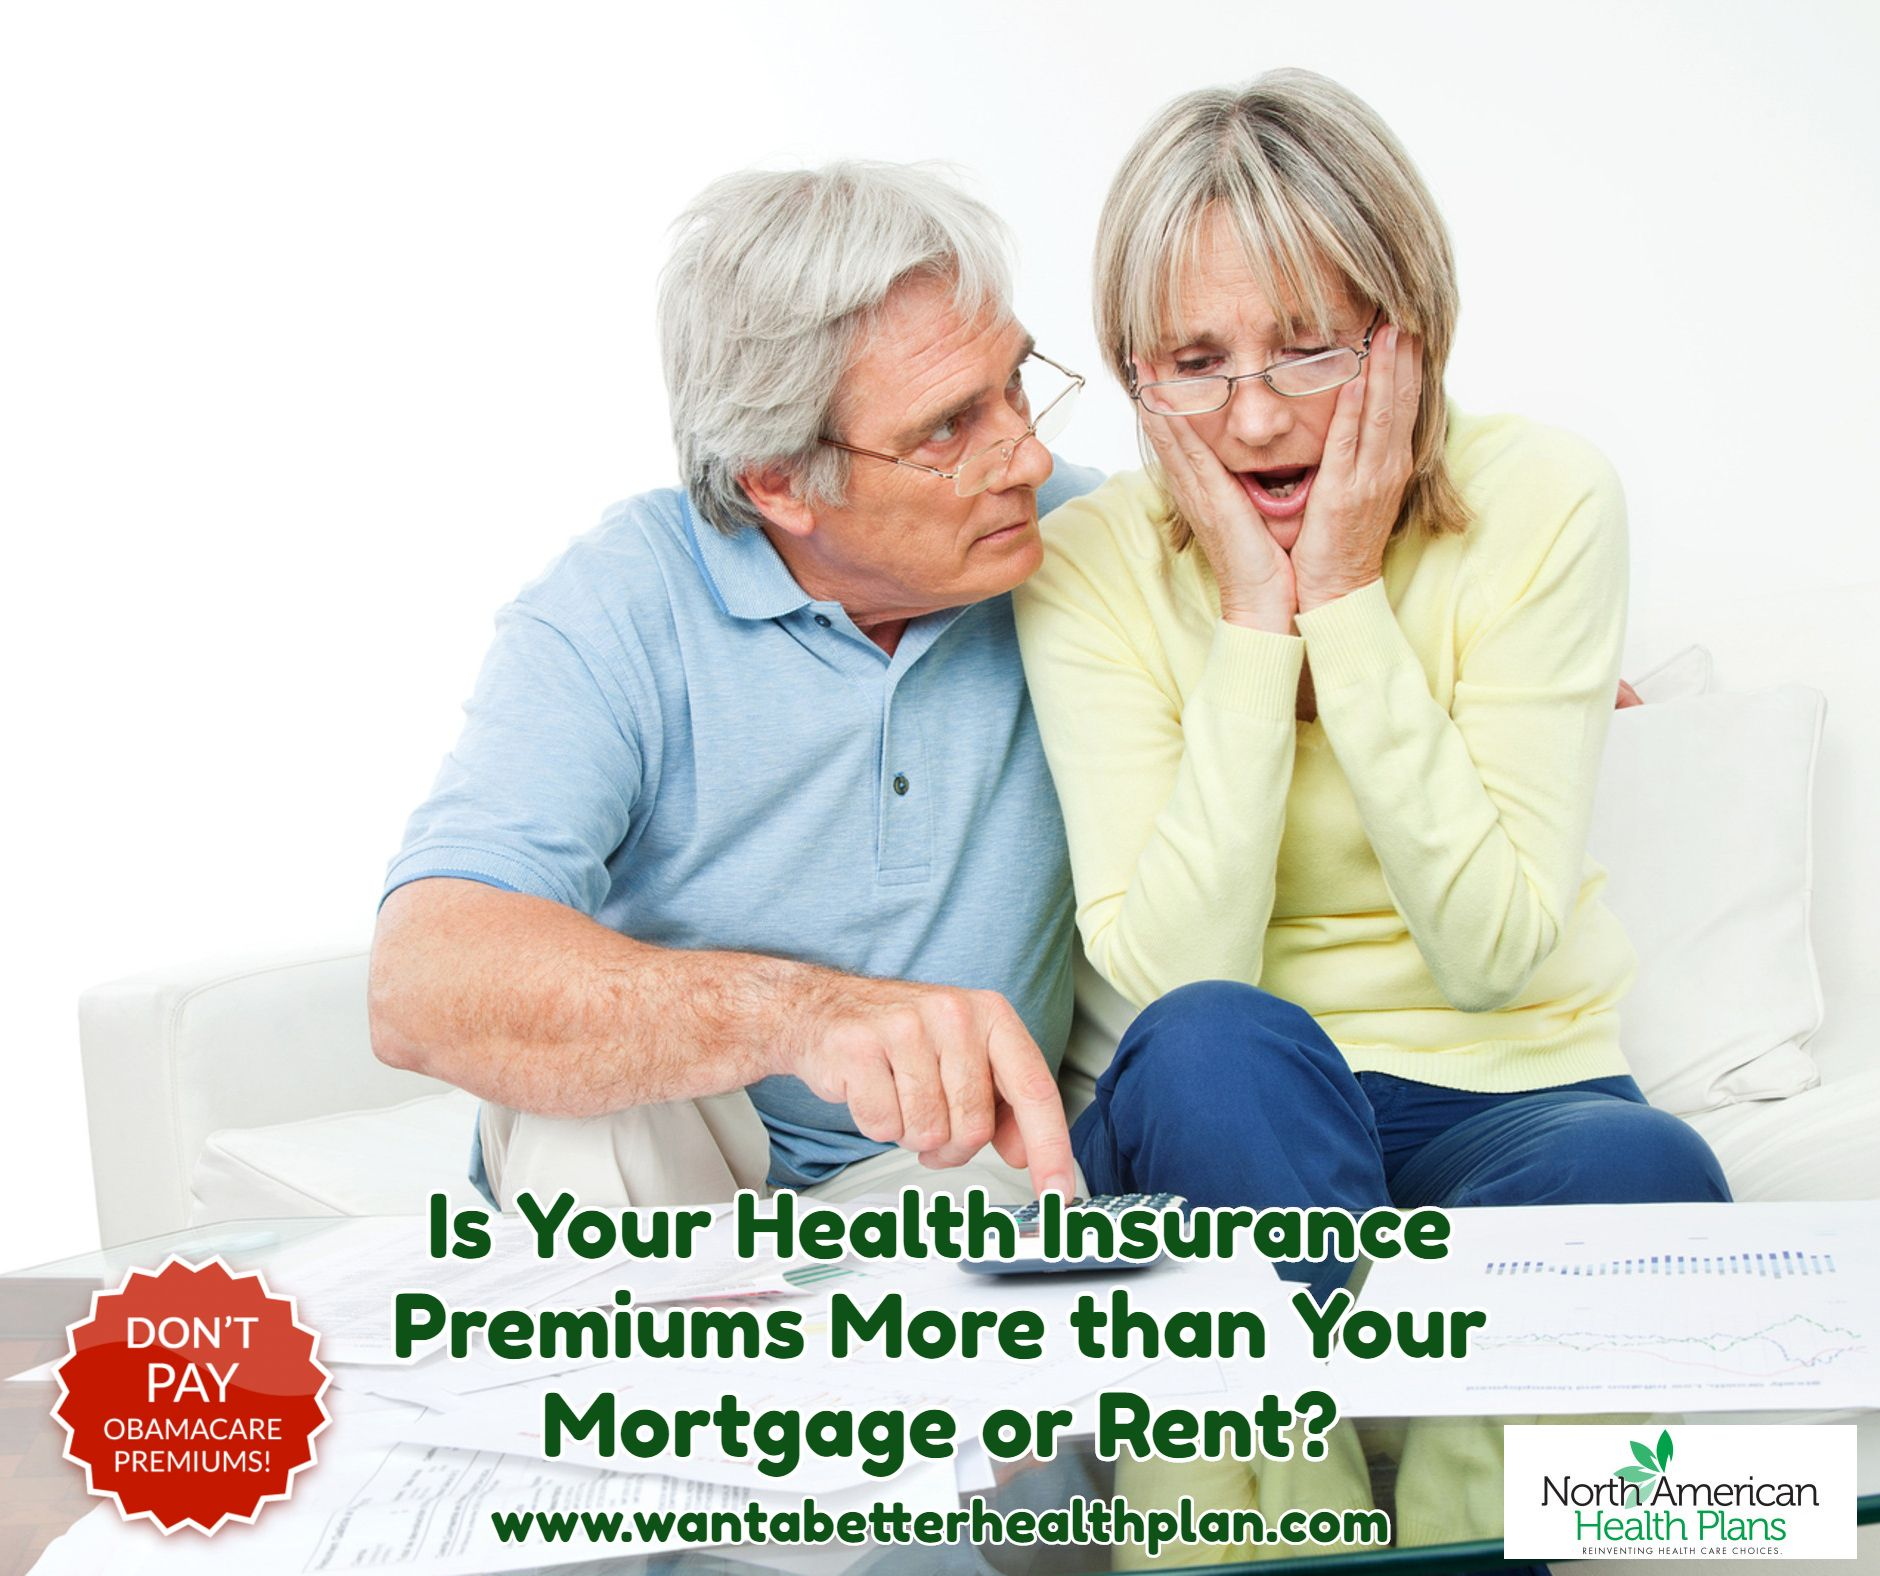 Is Your Health Insurance Premiums More than Your Mortgage